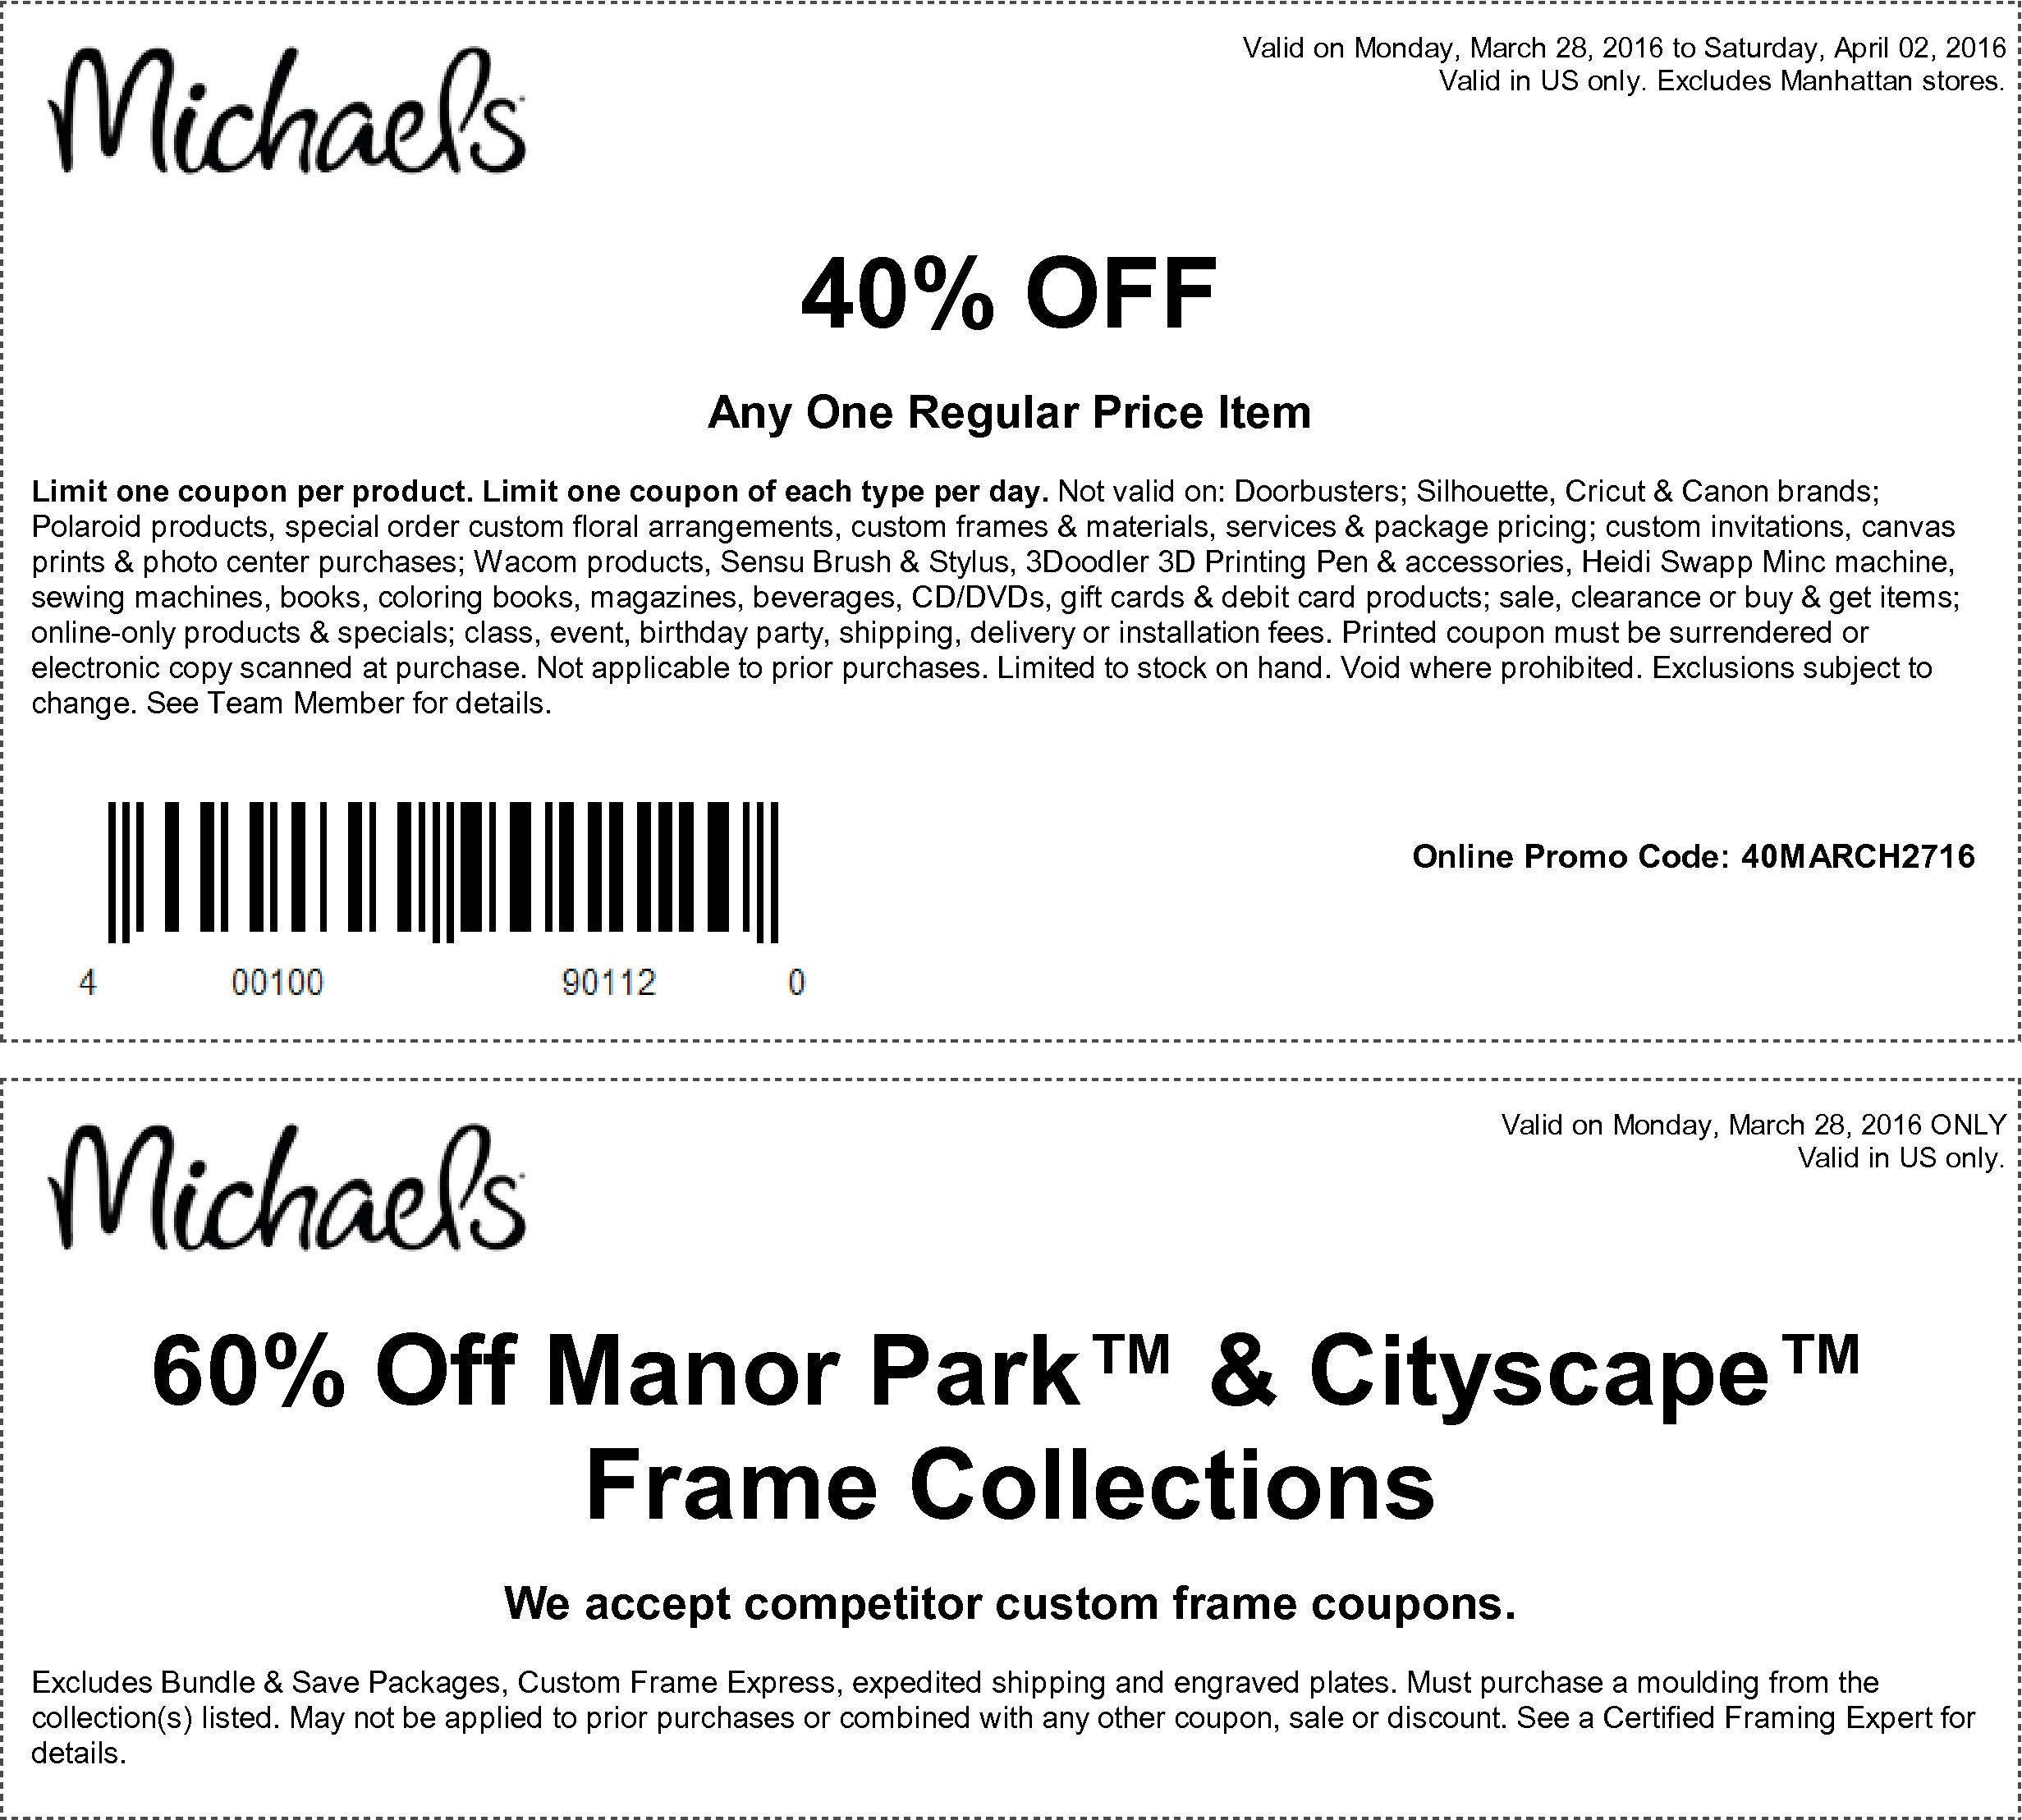 Michaels Coupon December 2017 40% off a single item at Michaels, or online via promo code 40MARCH2716